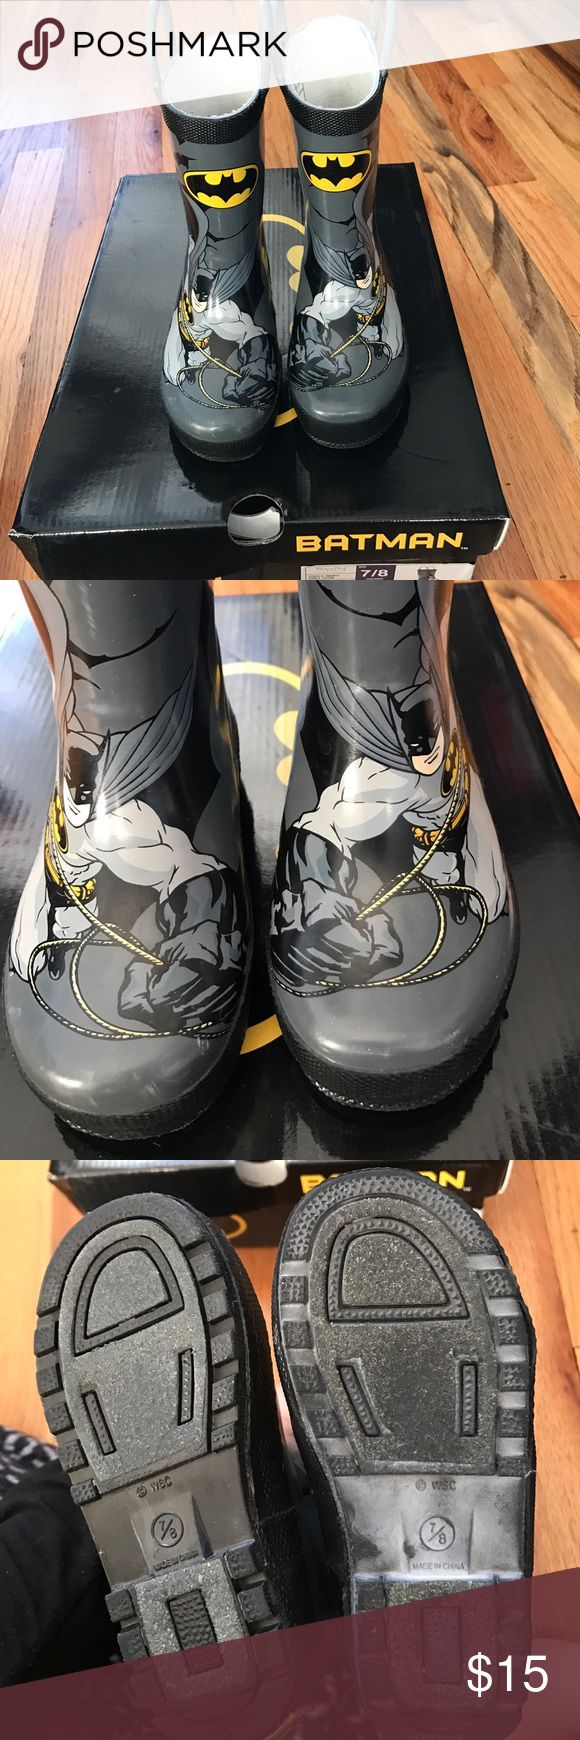 Toddler rain boots with box!  Size 7/8 Western chief toddler rain booties. Batman! Worn with love by my son but unfortunately too small. Scuffs on the toes Western Chief Shoes Rain & Snow Boots